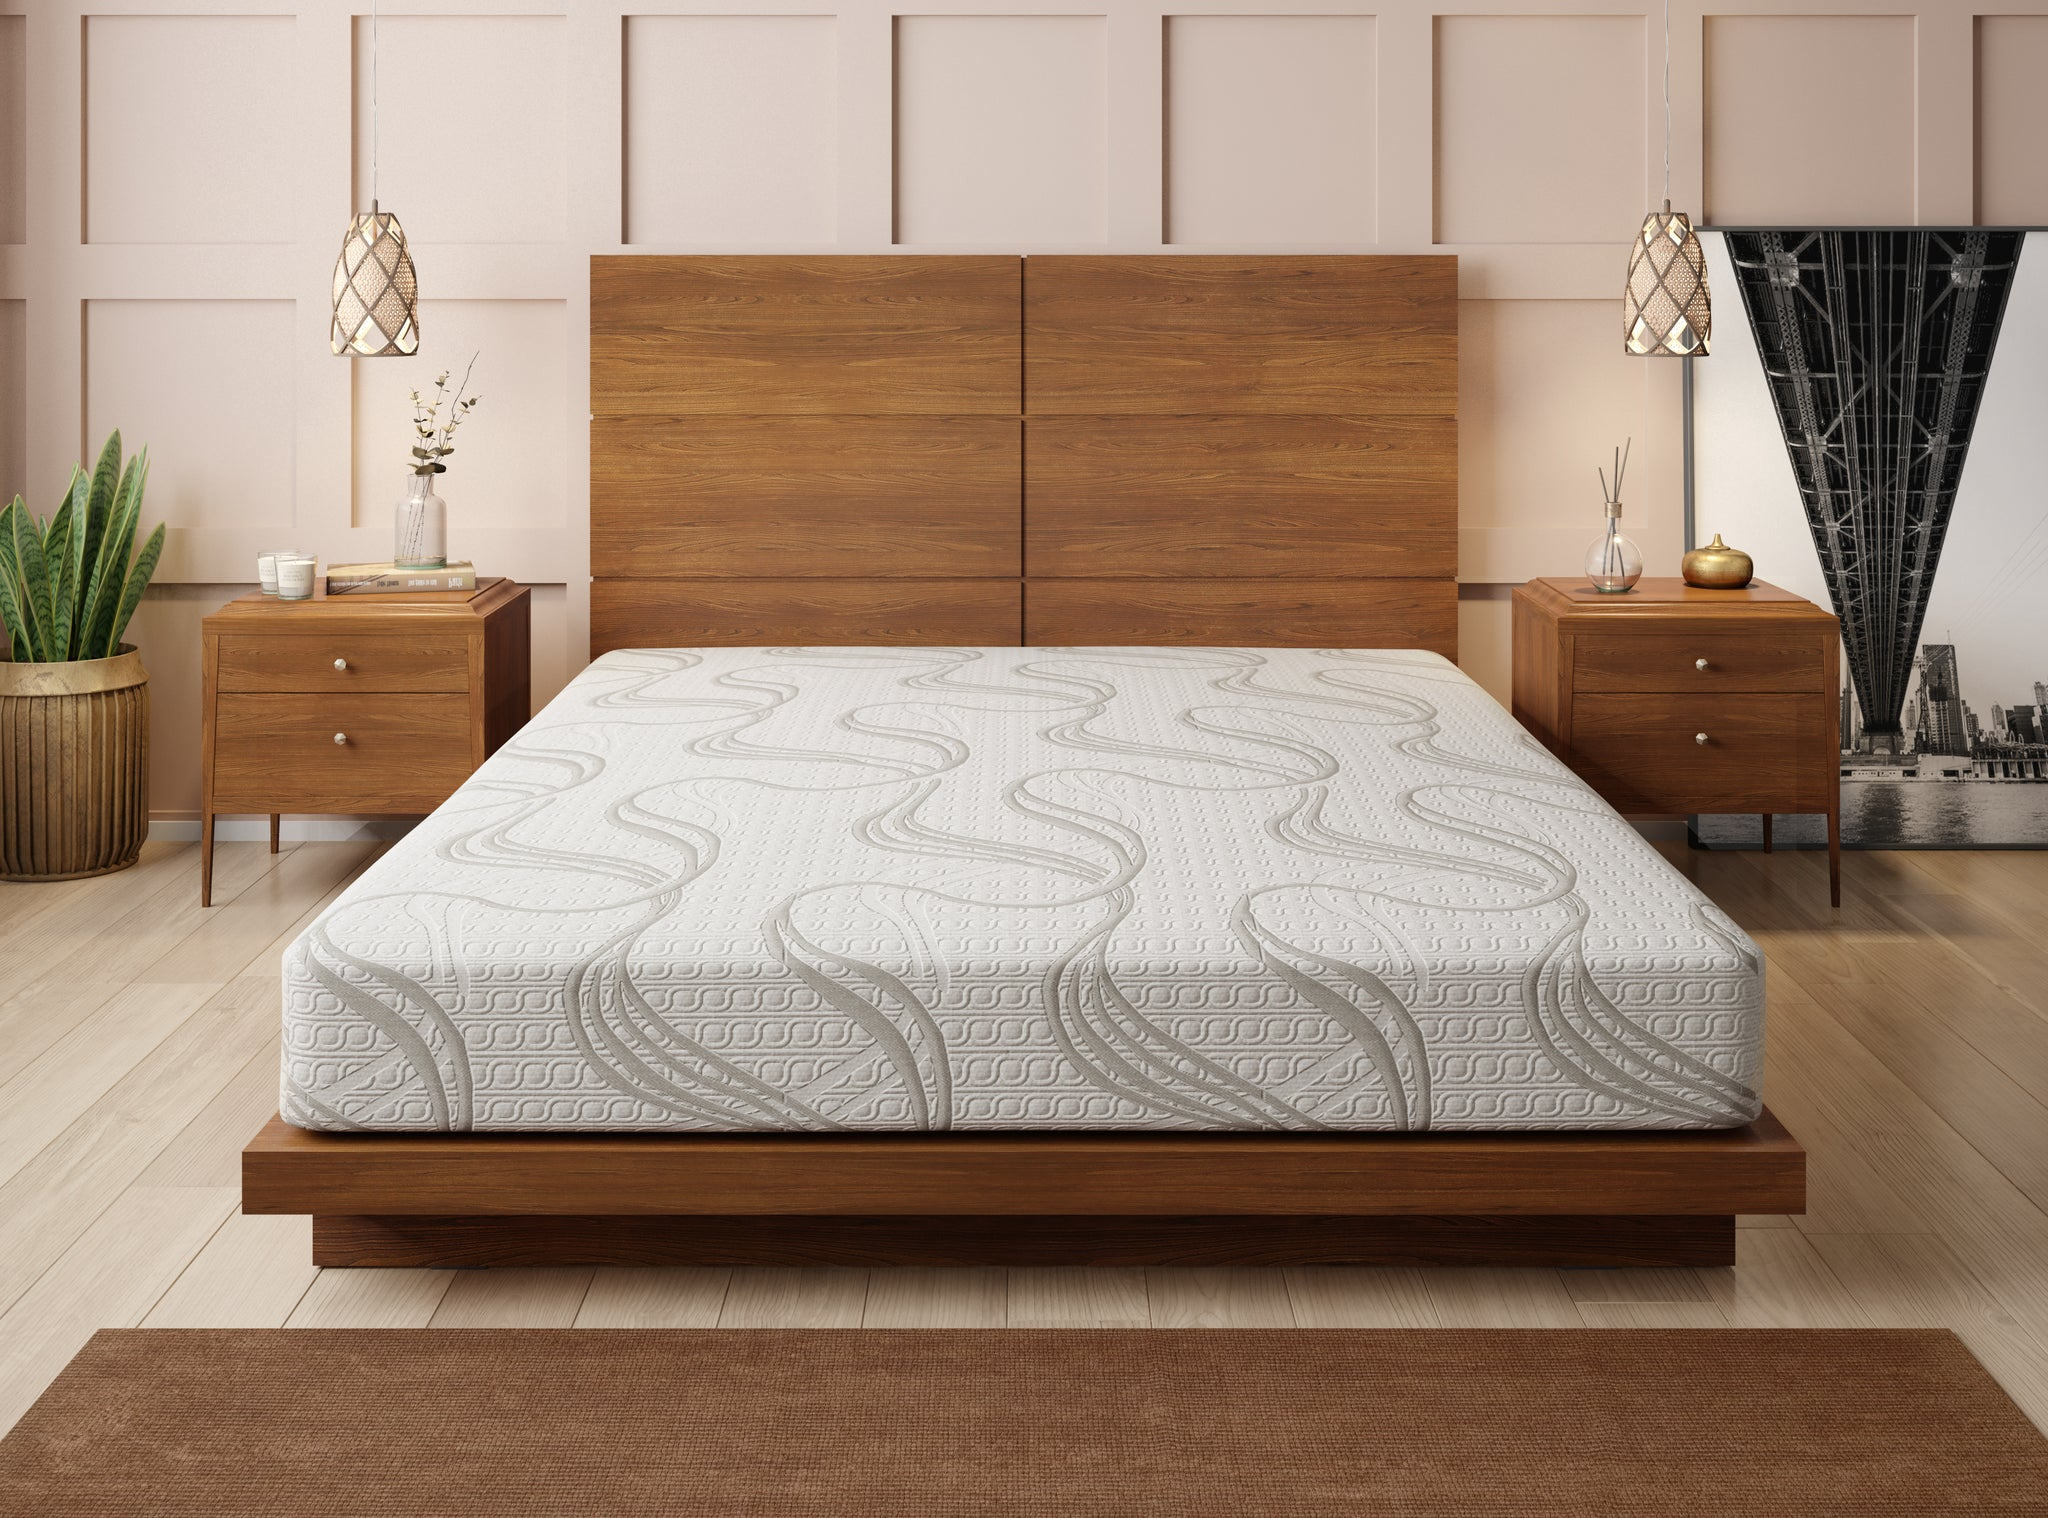 discounters pinterest best reno images on mattress the for fresh back of pain